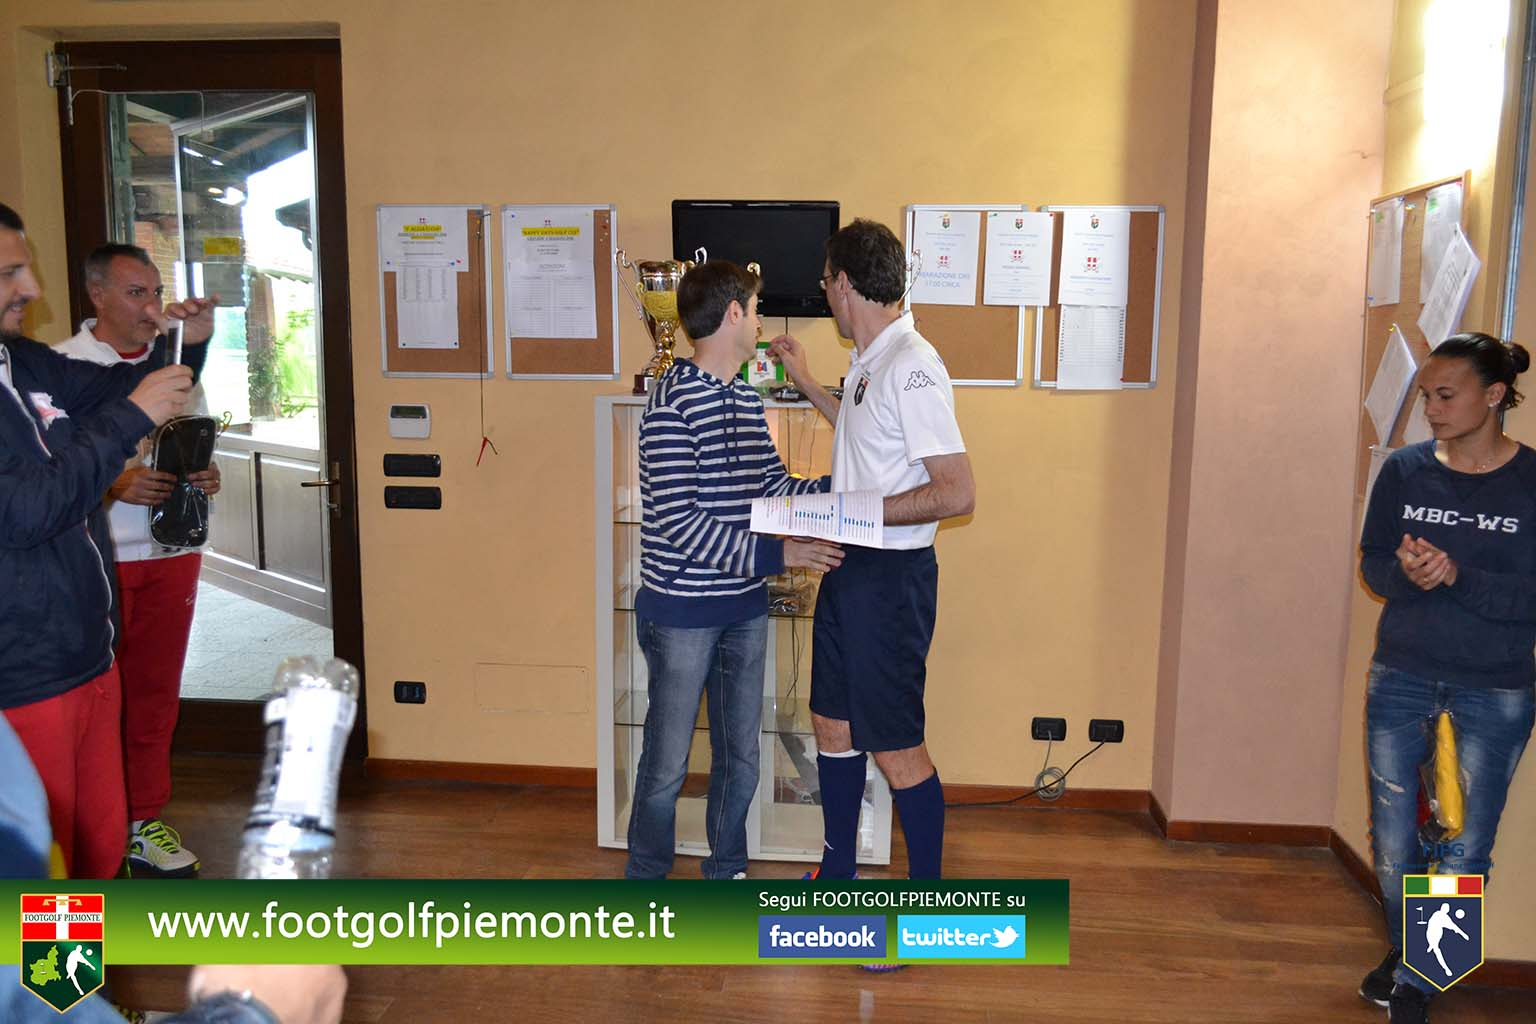 FOTO 9 Regions' Cup Footgolf Piemonte 2016 Golf Città di Asti (At) 30apr16-126